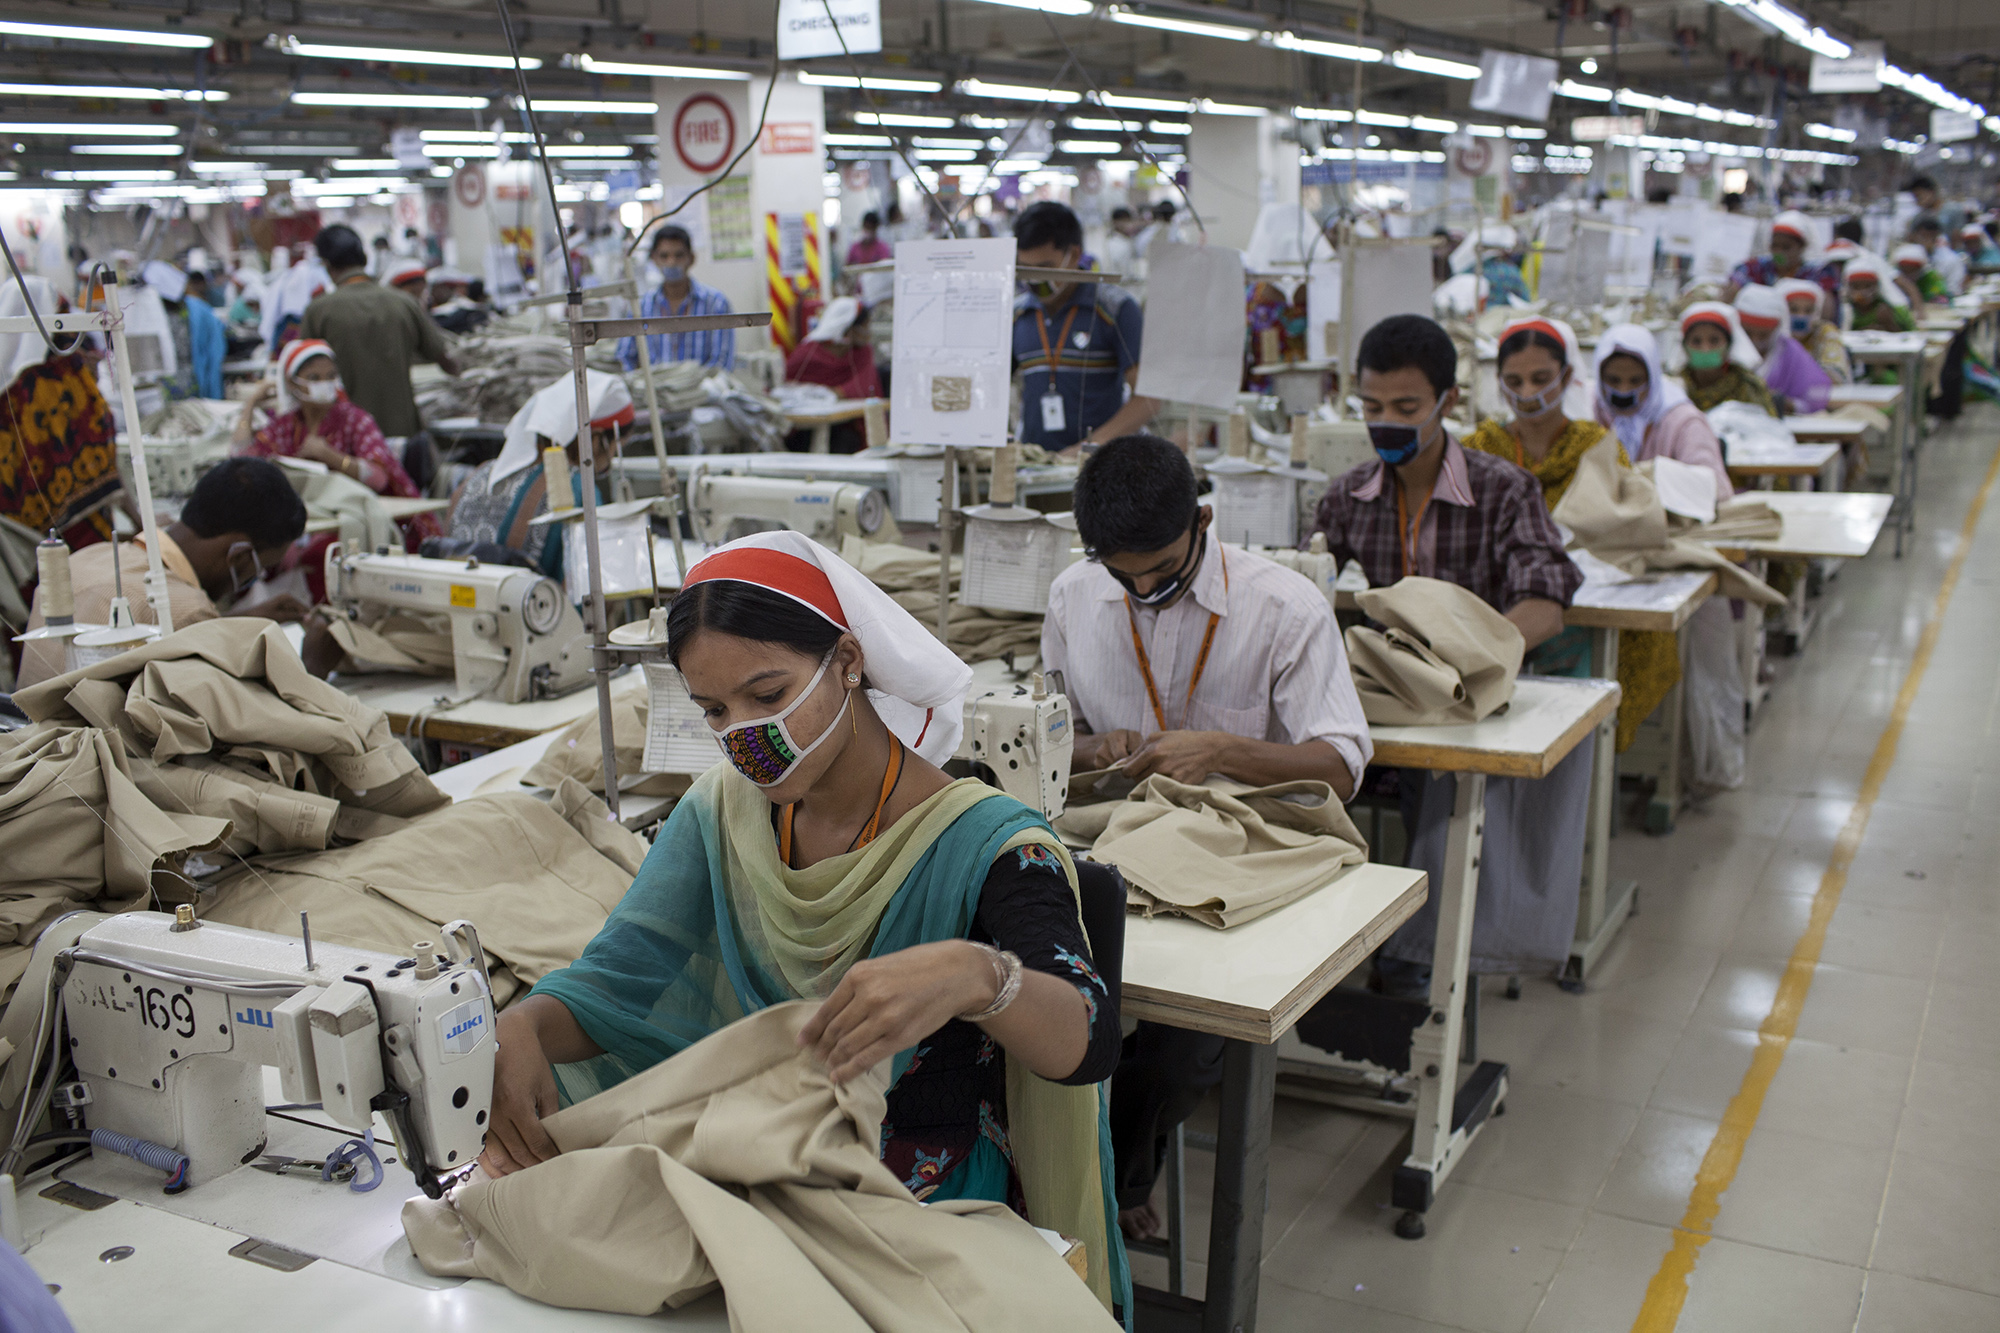 Garment workers on a sewing line at the Sparrow Apparels Limited garment factory in the Gazipur area of Dhaka, Bangladesh. (Credit: Will Baxter)